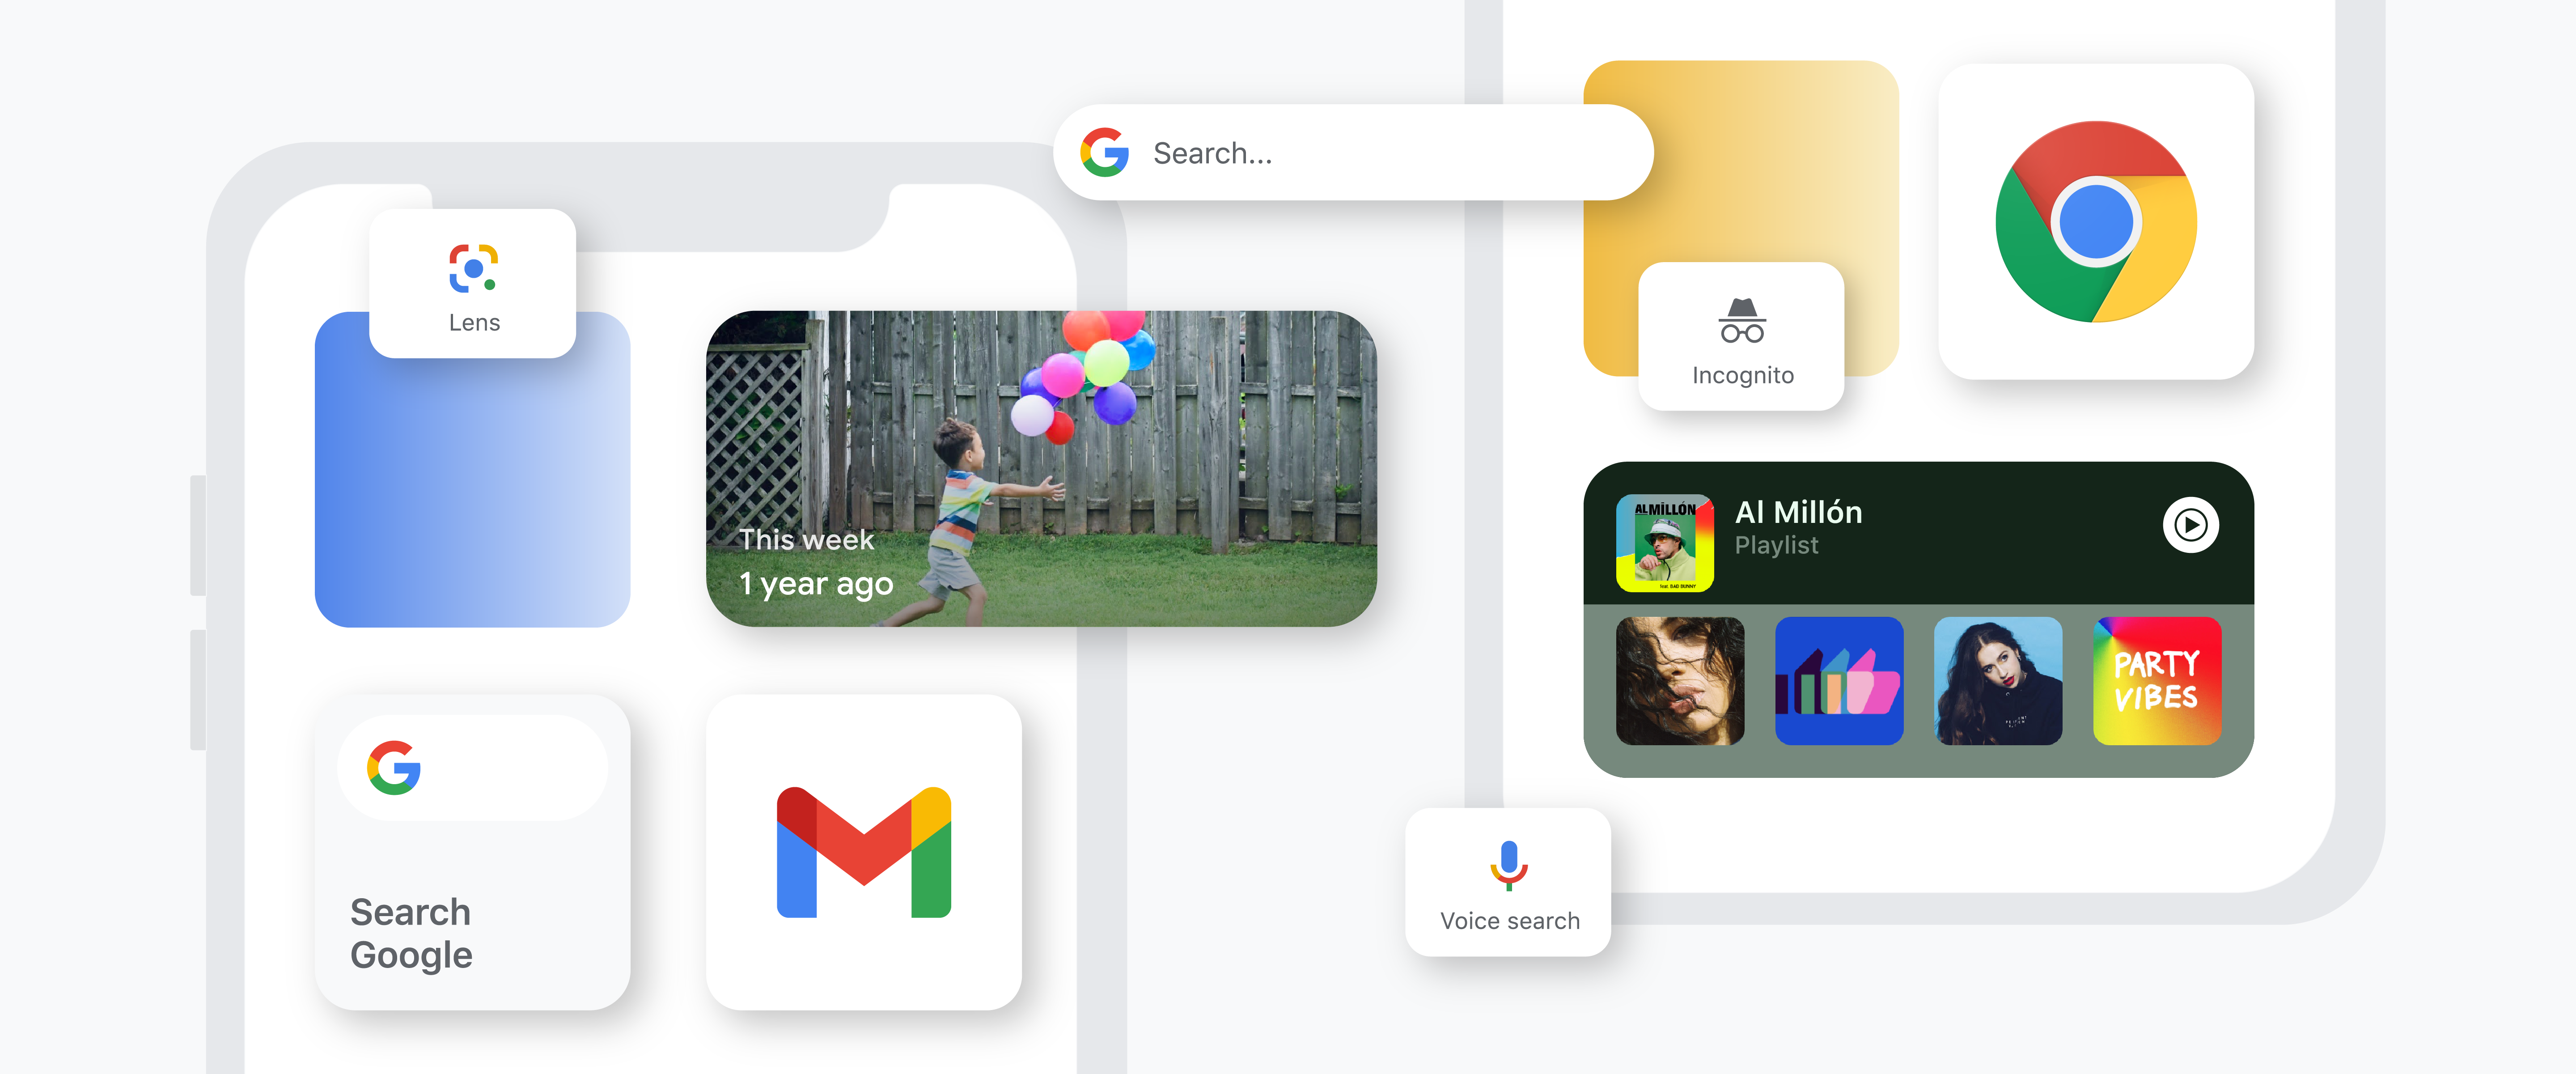 Try out these Google features on your new iPhone